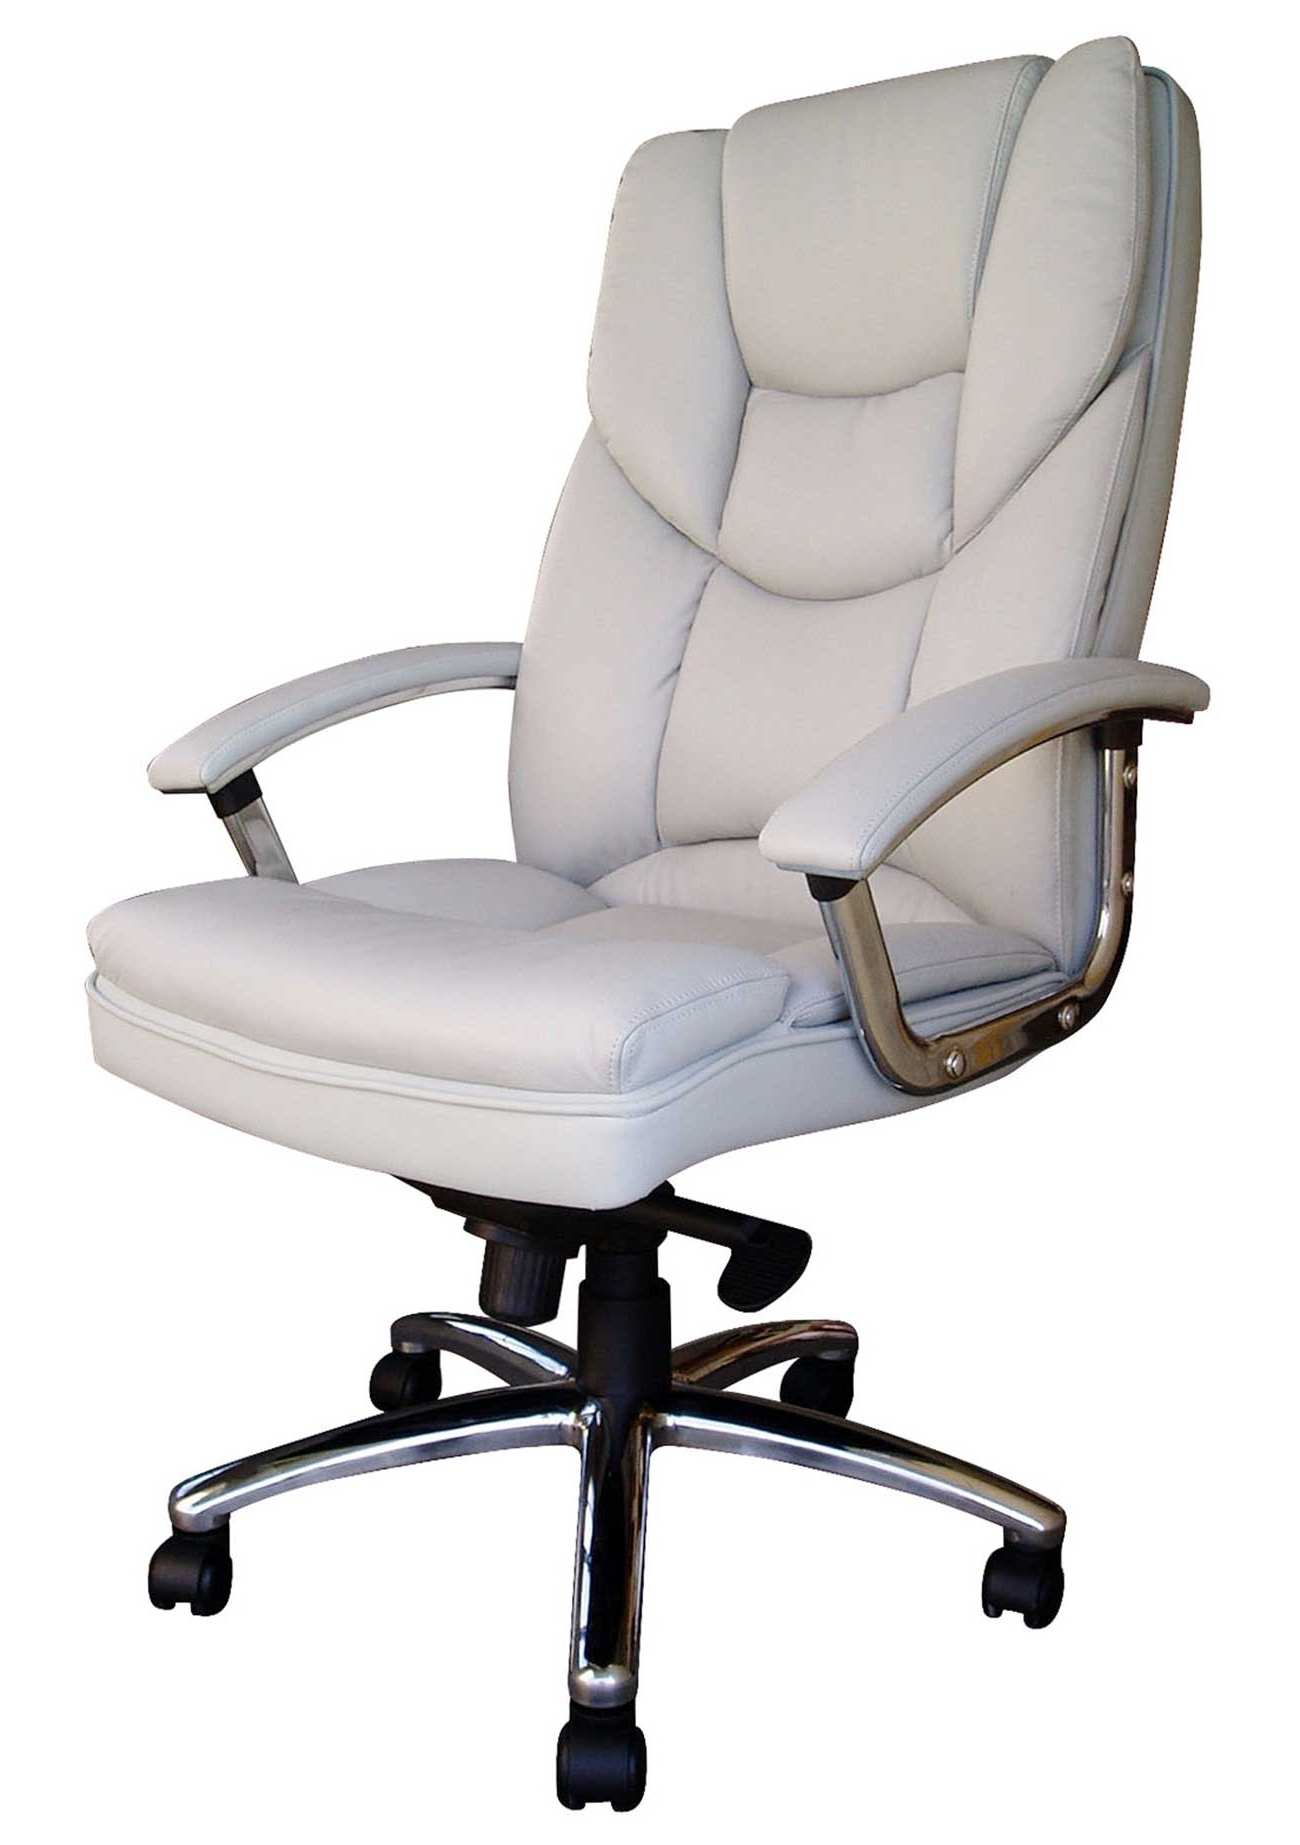 Newest Funiture: White Office Furniture Ideas Using White Wooden Corner Regarding Contemporary Executive Office Chairs (View 14 of 20)